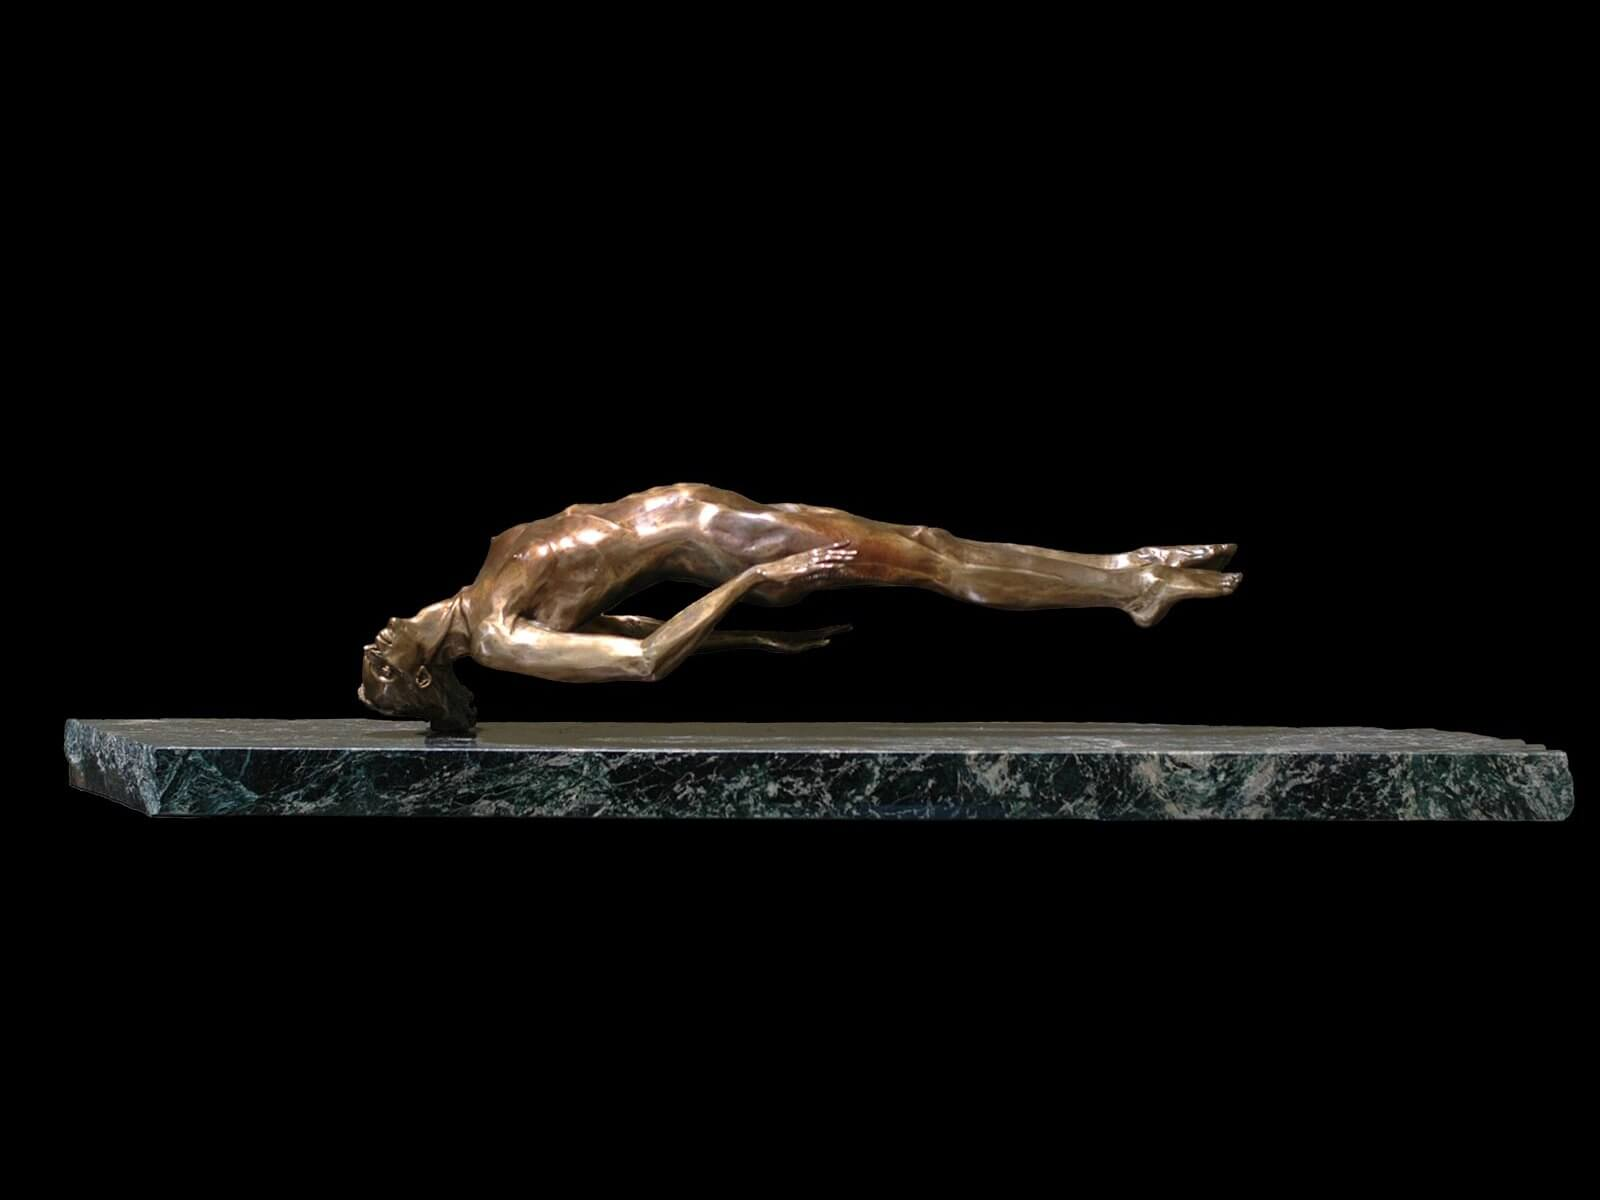 Innocence a bronze figurative sculpture created by Andrew DeVries in 1993. Edition sold out. Commissioned larger in 2009 created